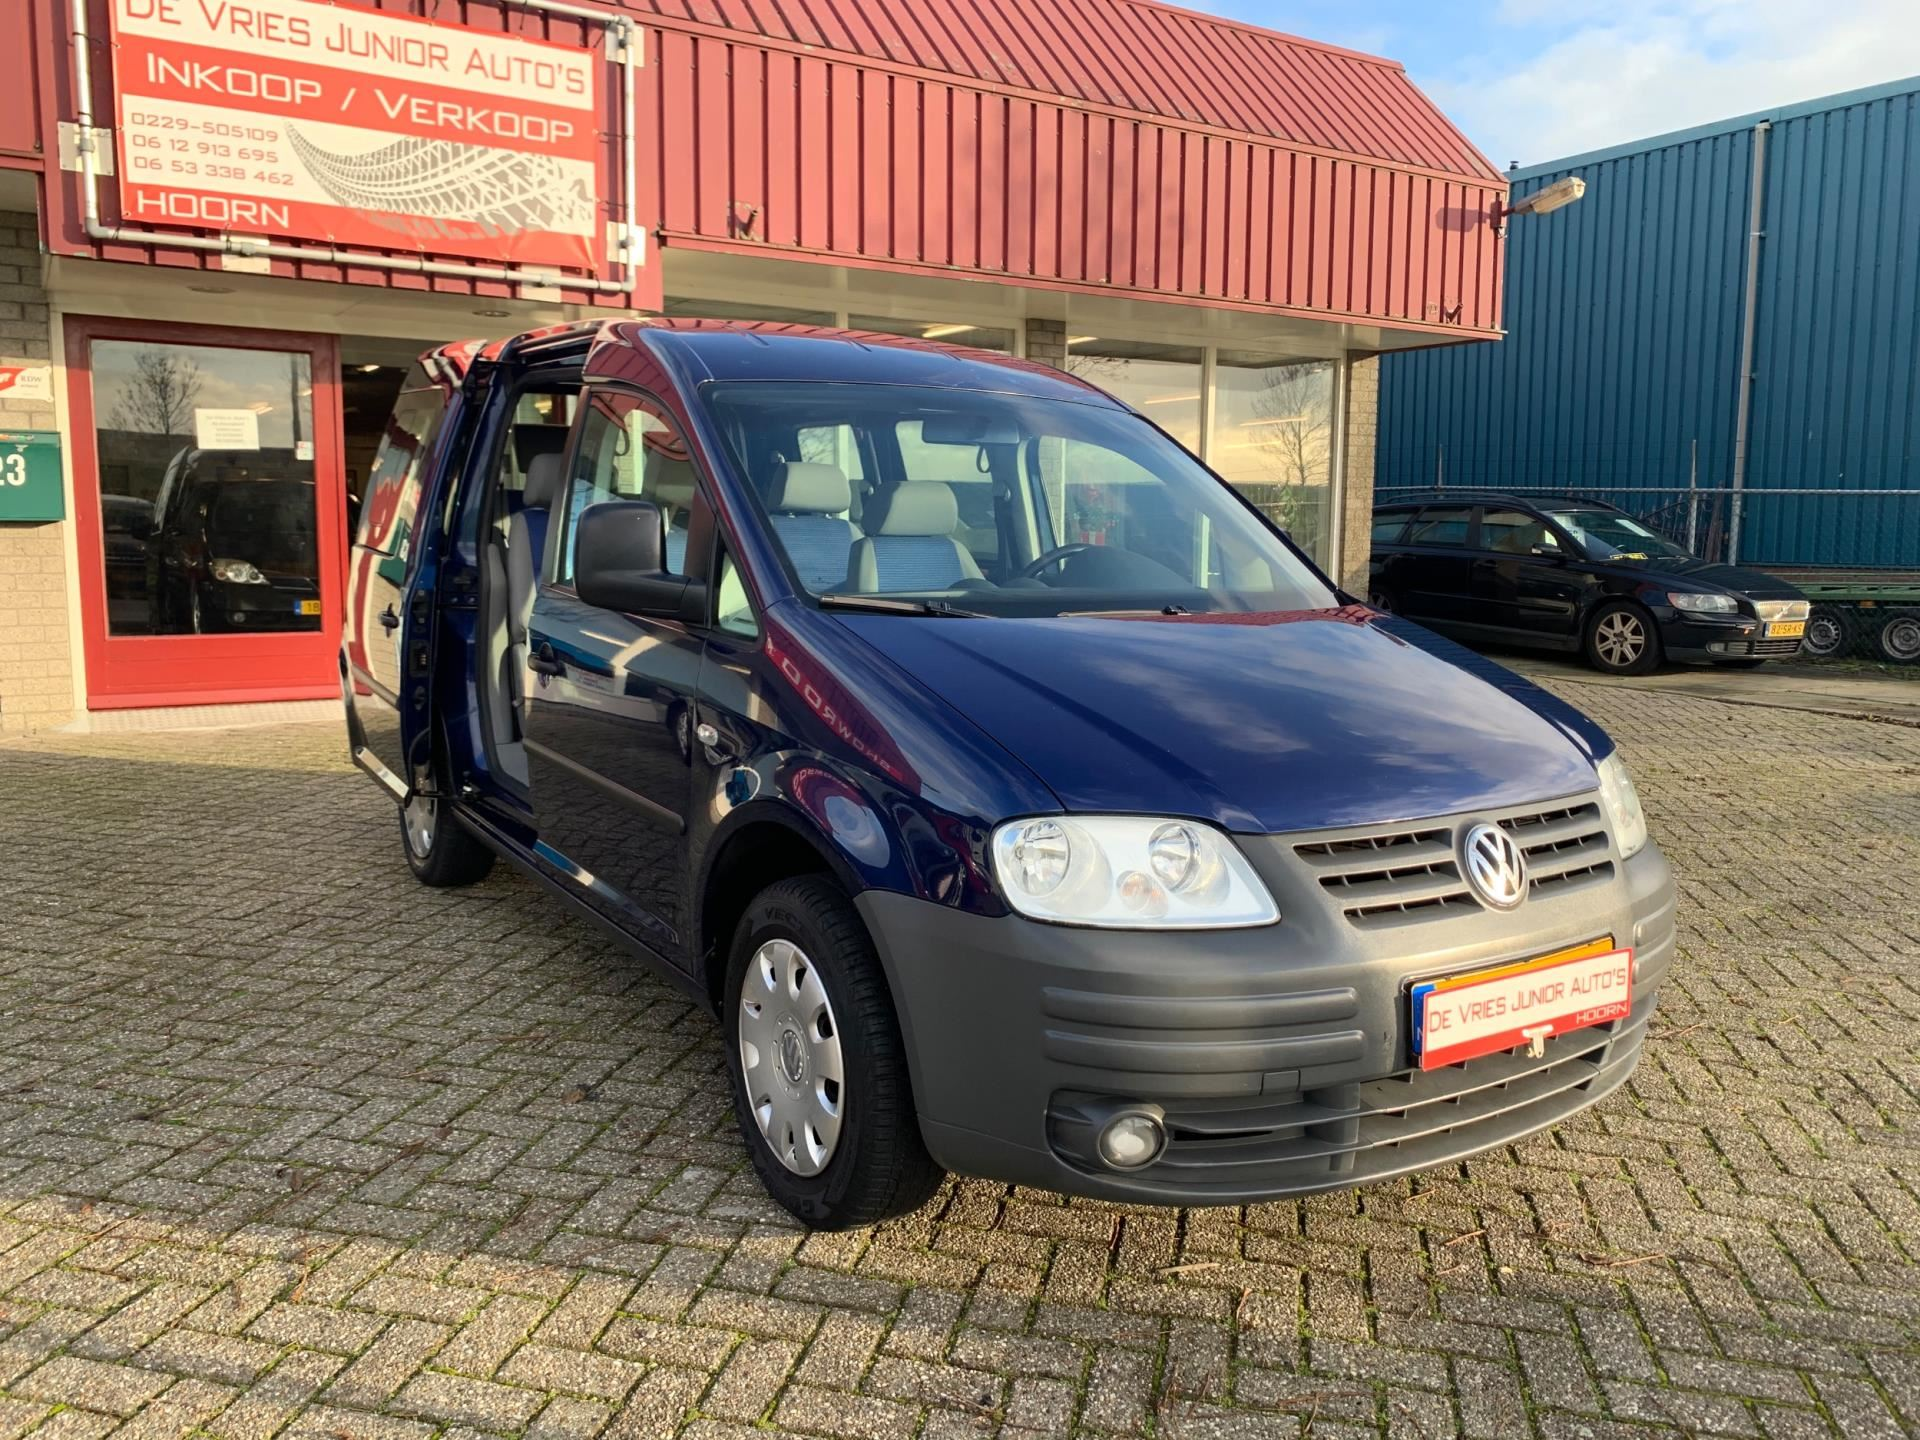 Volkswagen Caddy occasion - De Vries Junior Auto's